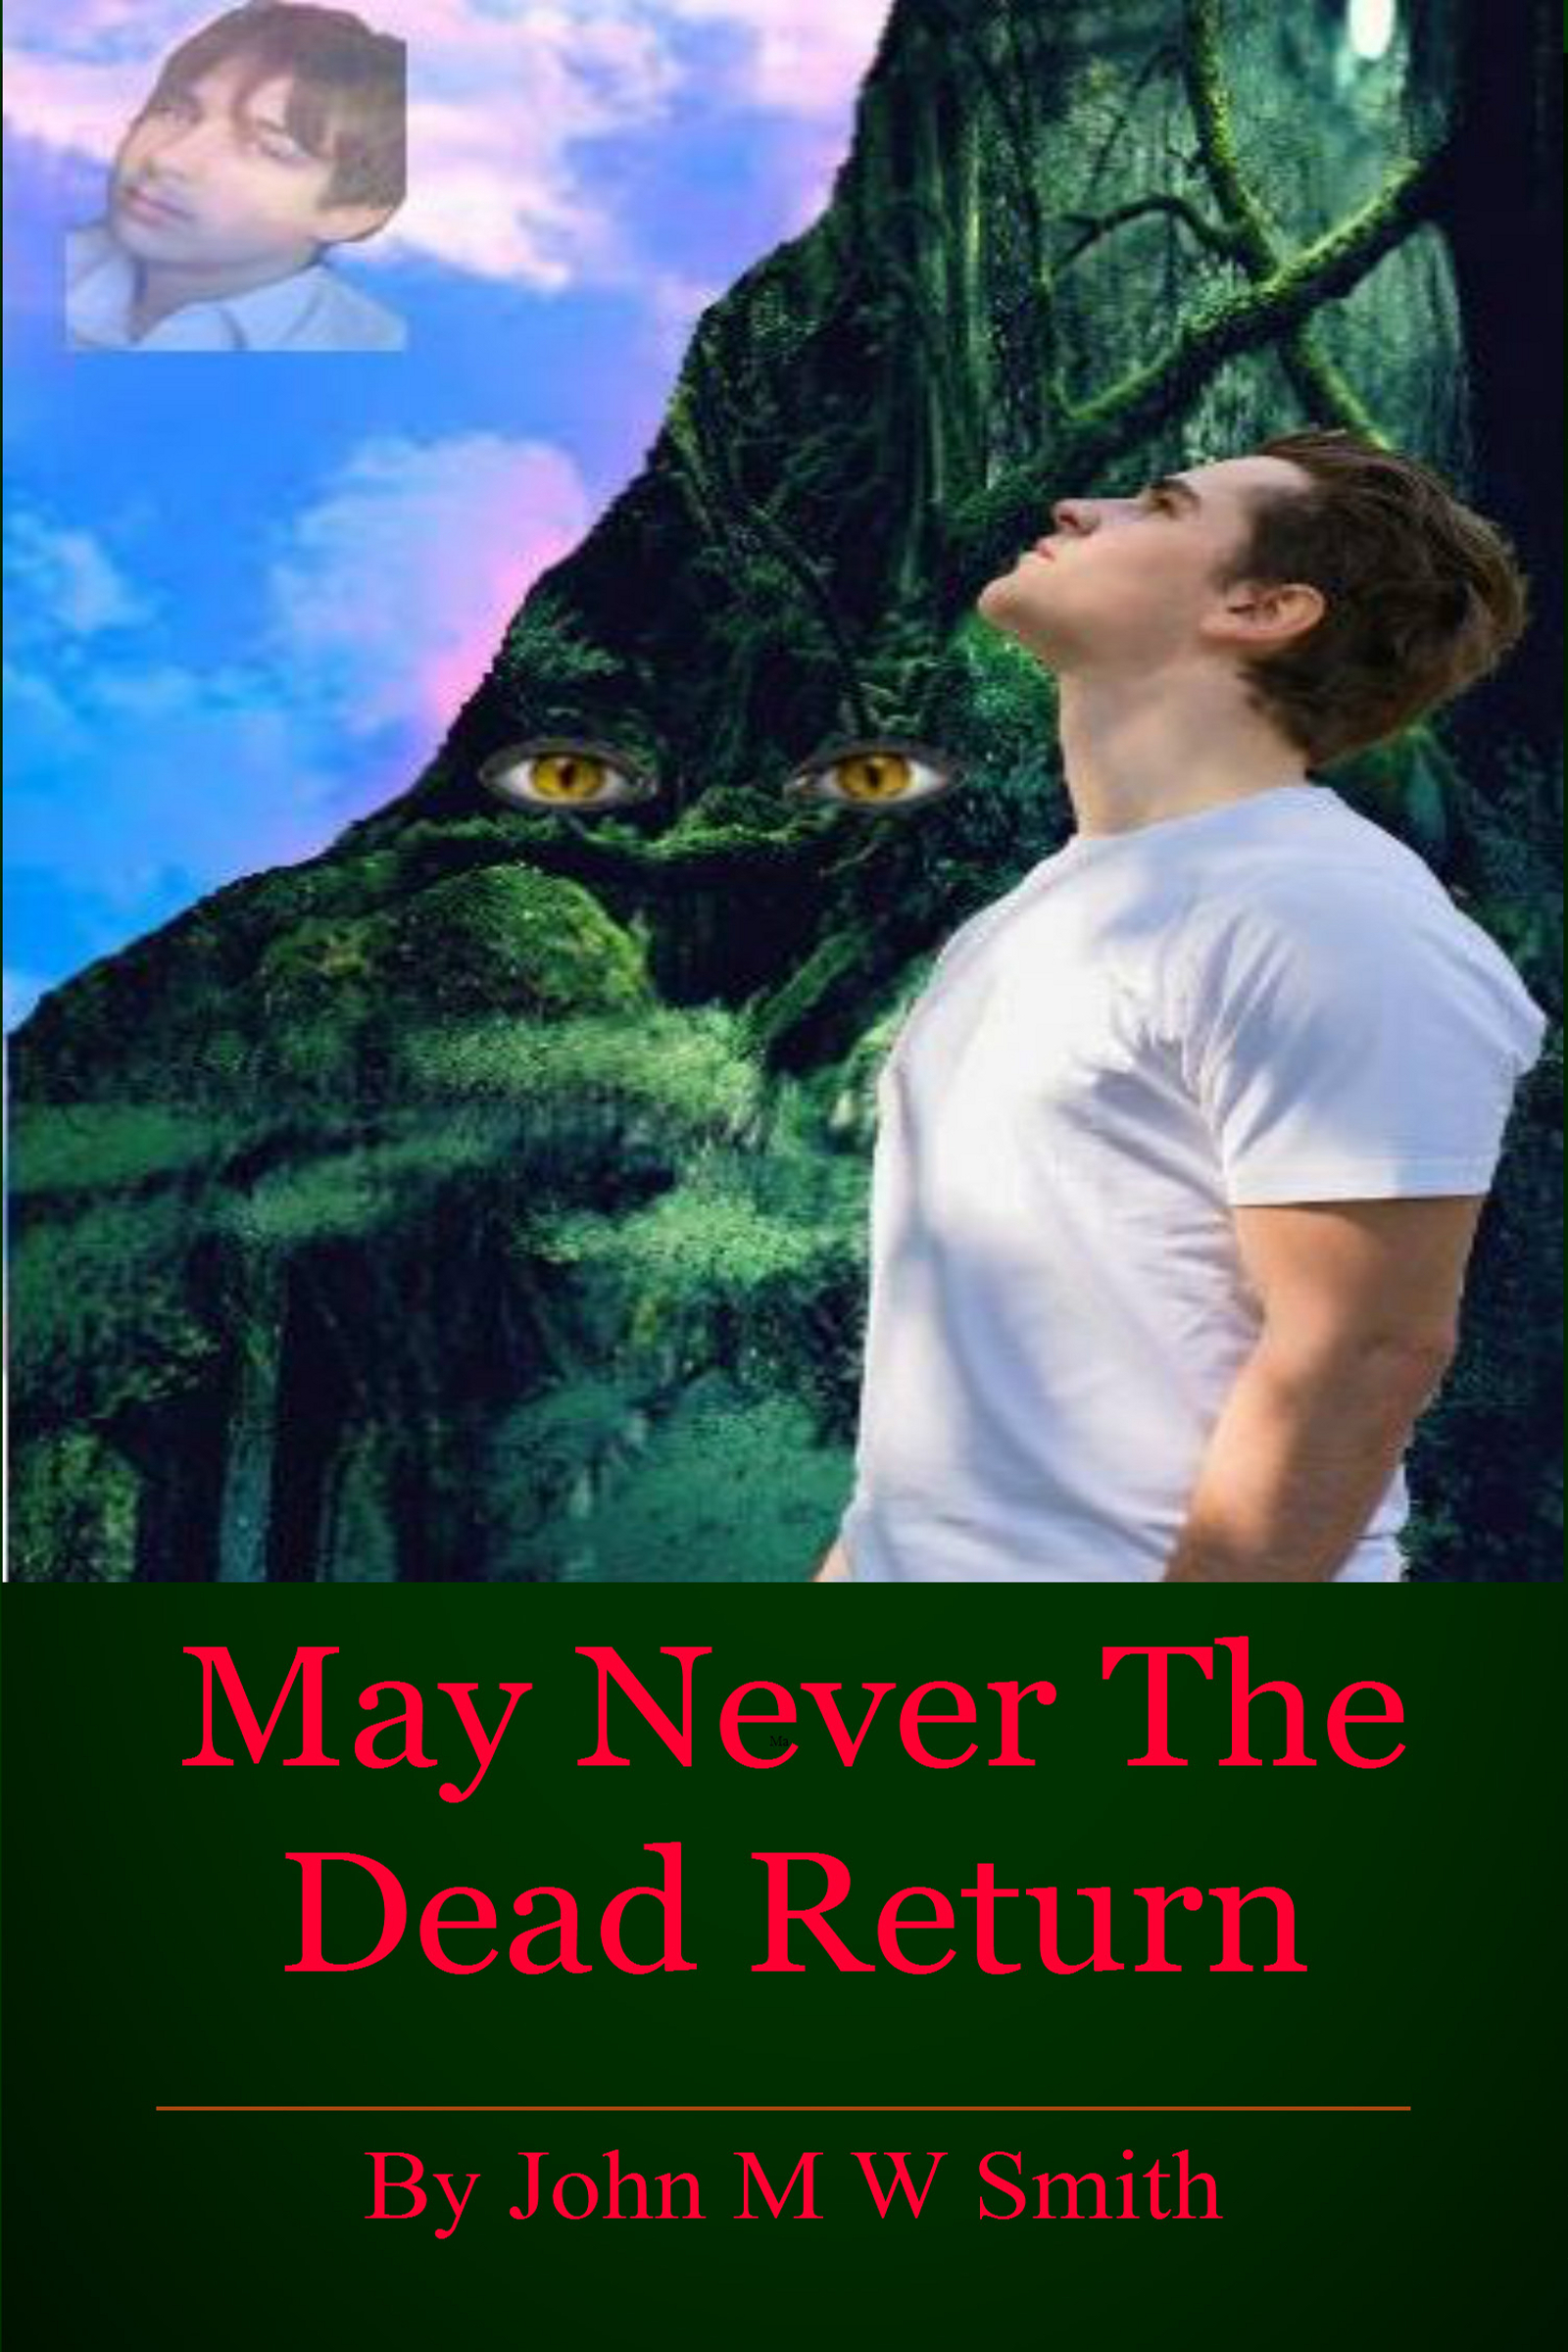 May Never The Dead Return John M.W. Smith